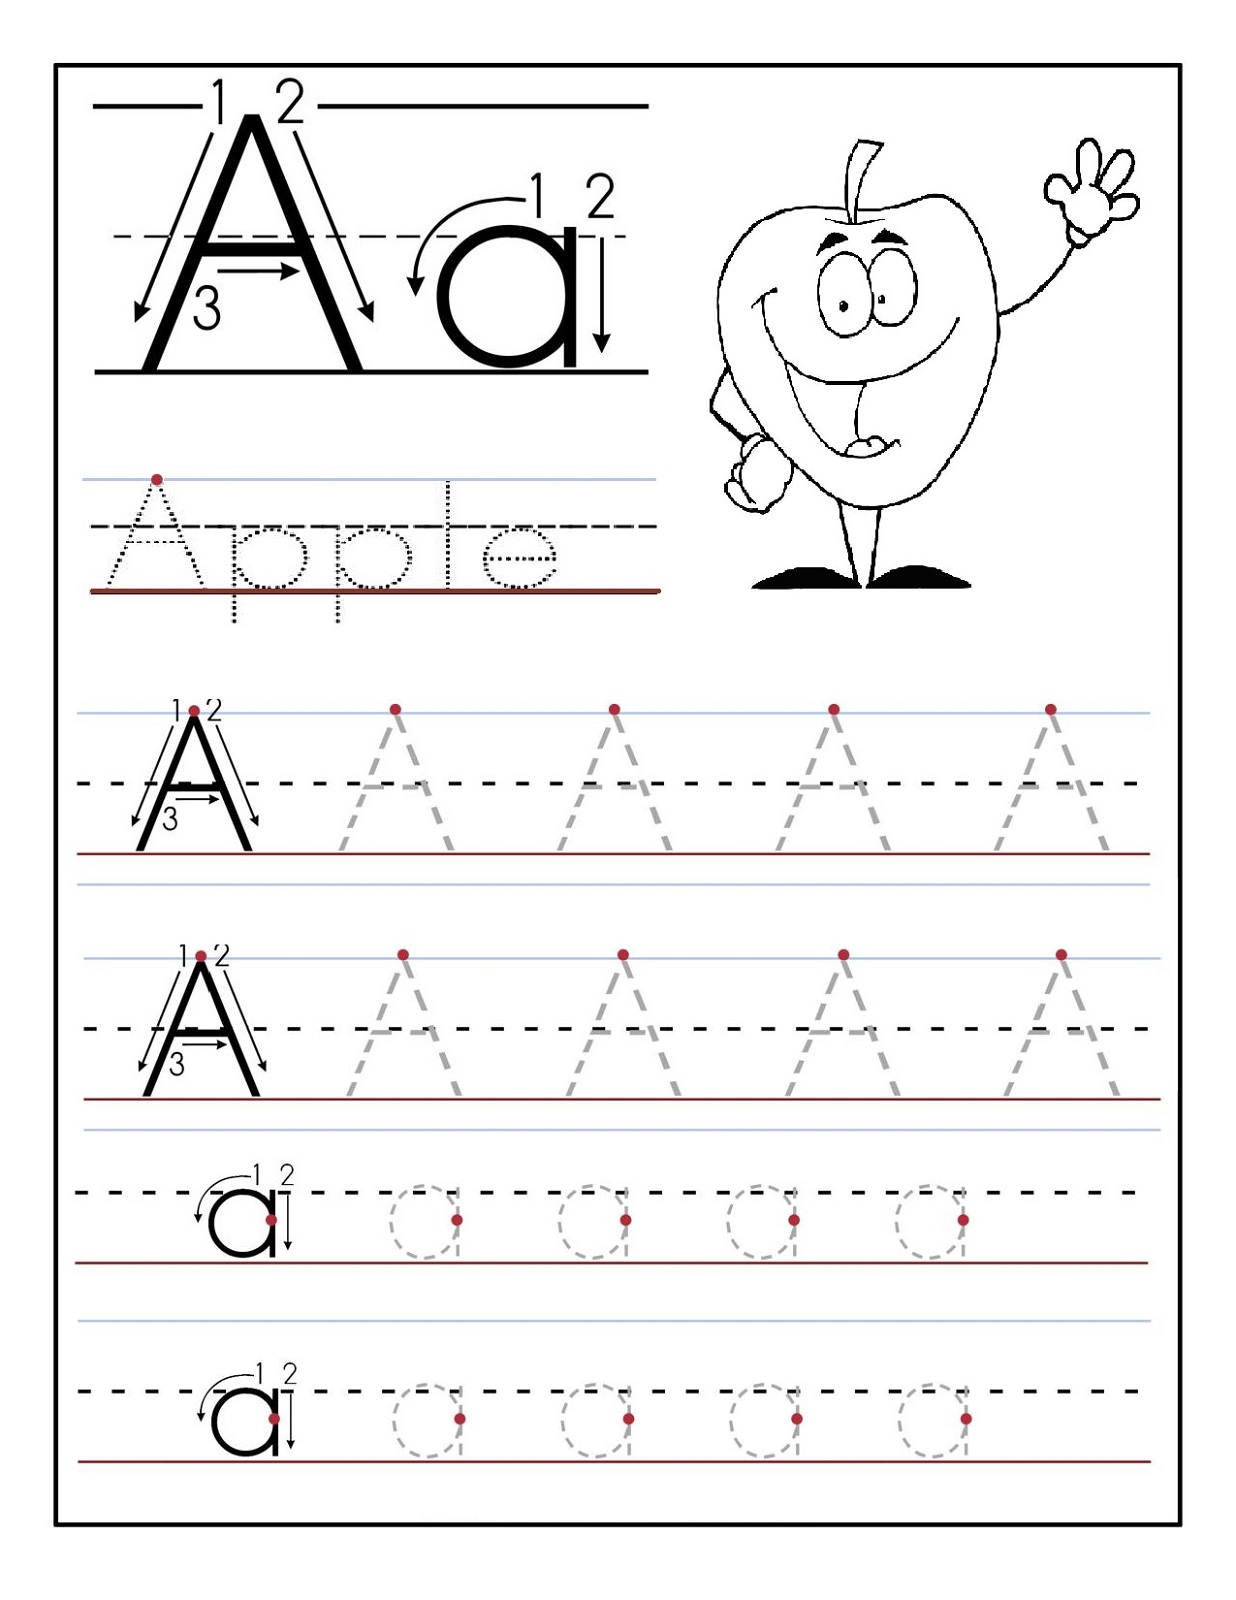 Printables Free Printable Preschool Worksheets Tracing free printable preschool worksheets tracing intrepidpath printables activity shelter